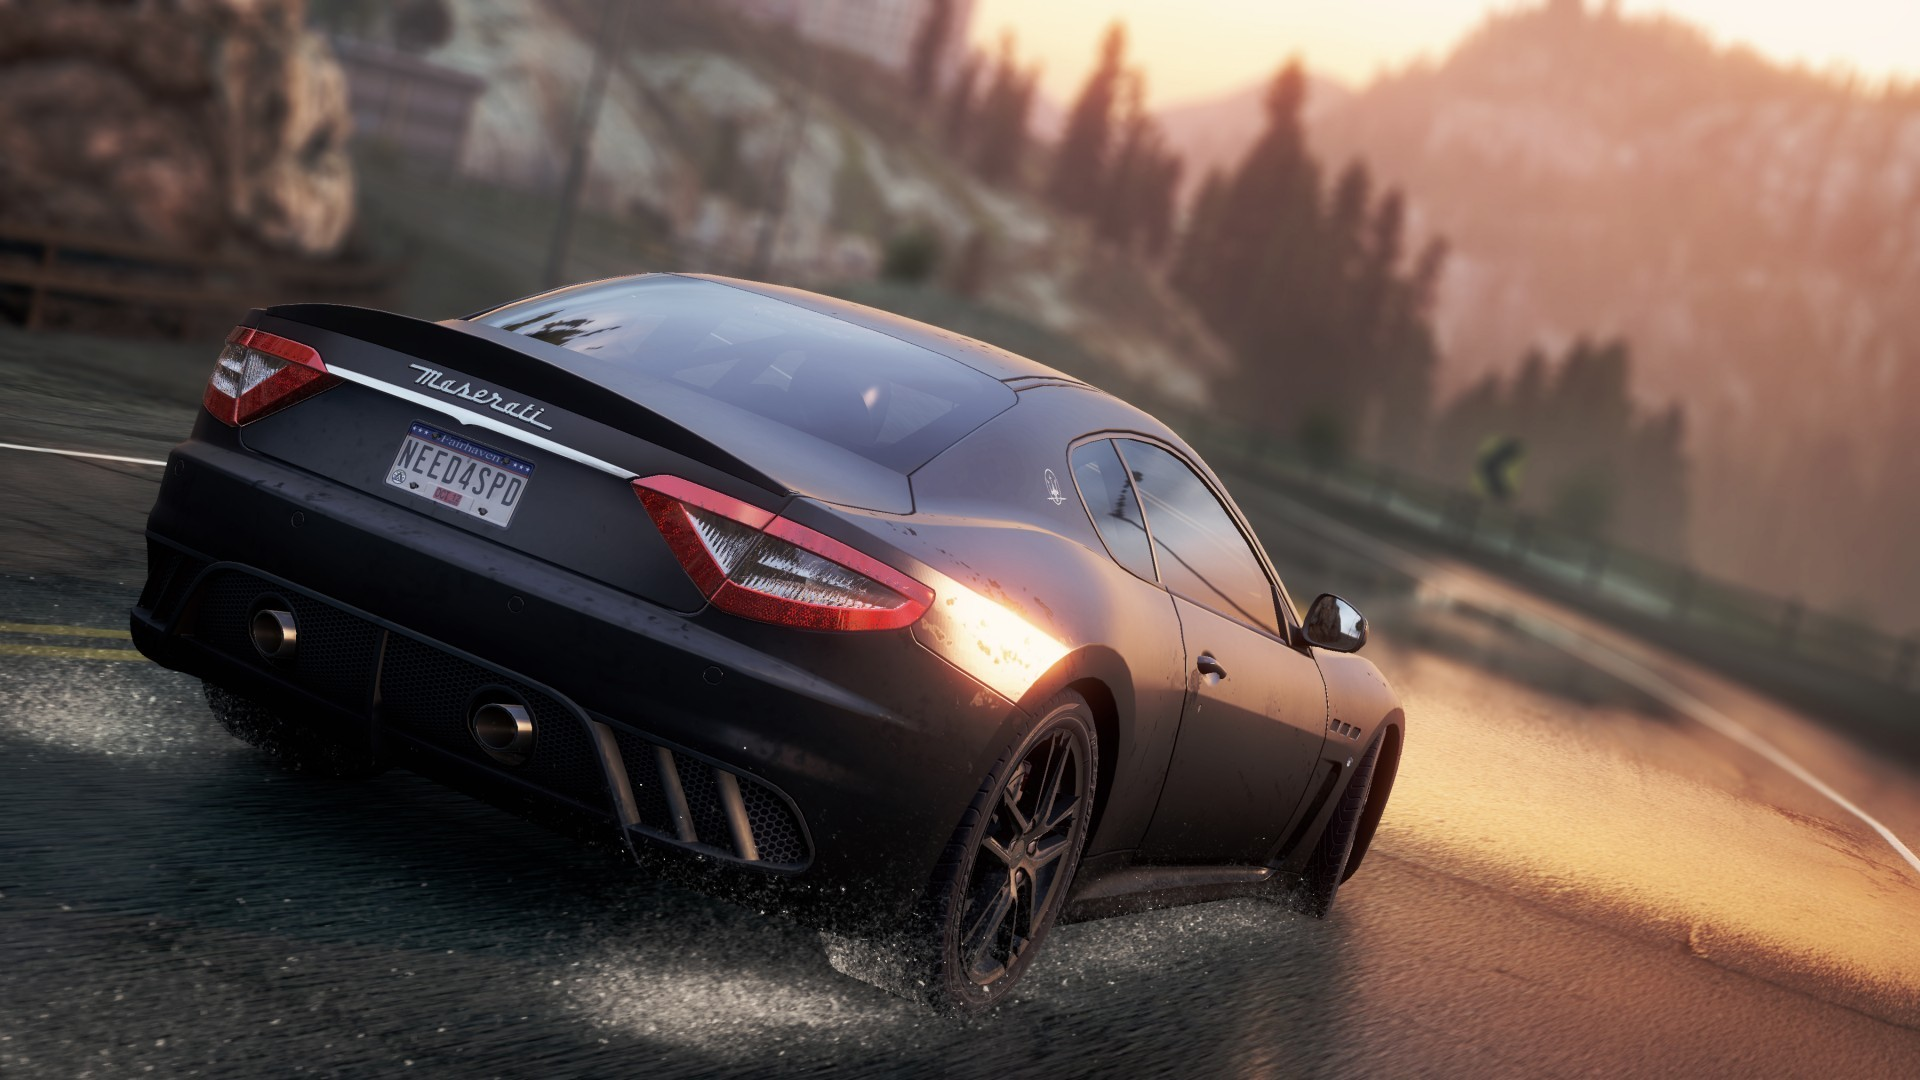 10 Most Popular Need For Speed Wallpaper Full Hd 1080p For: Need For Speed: Most Wanted (2012) HD Wallpaper